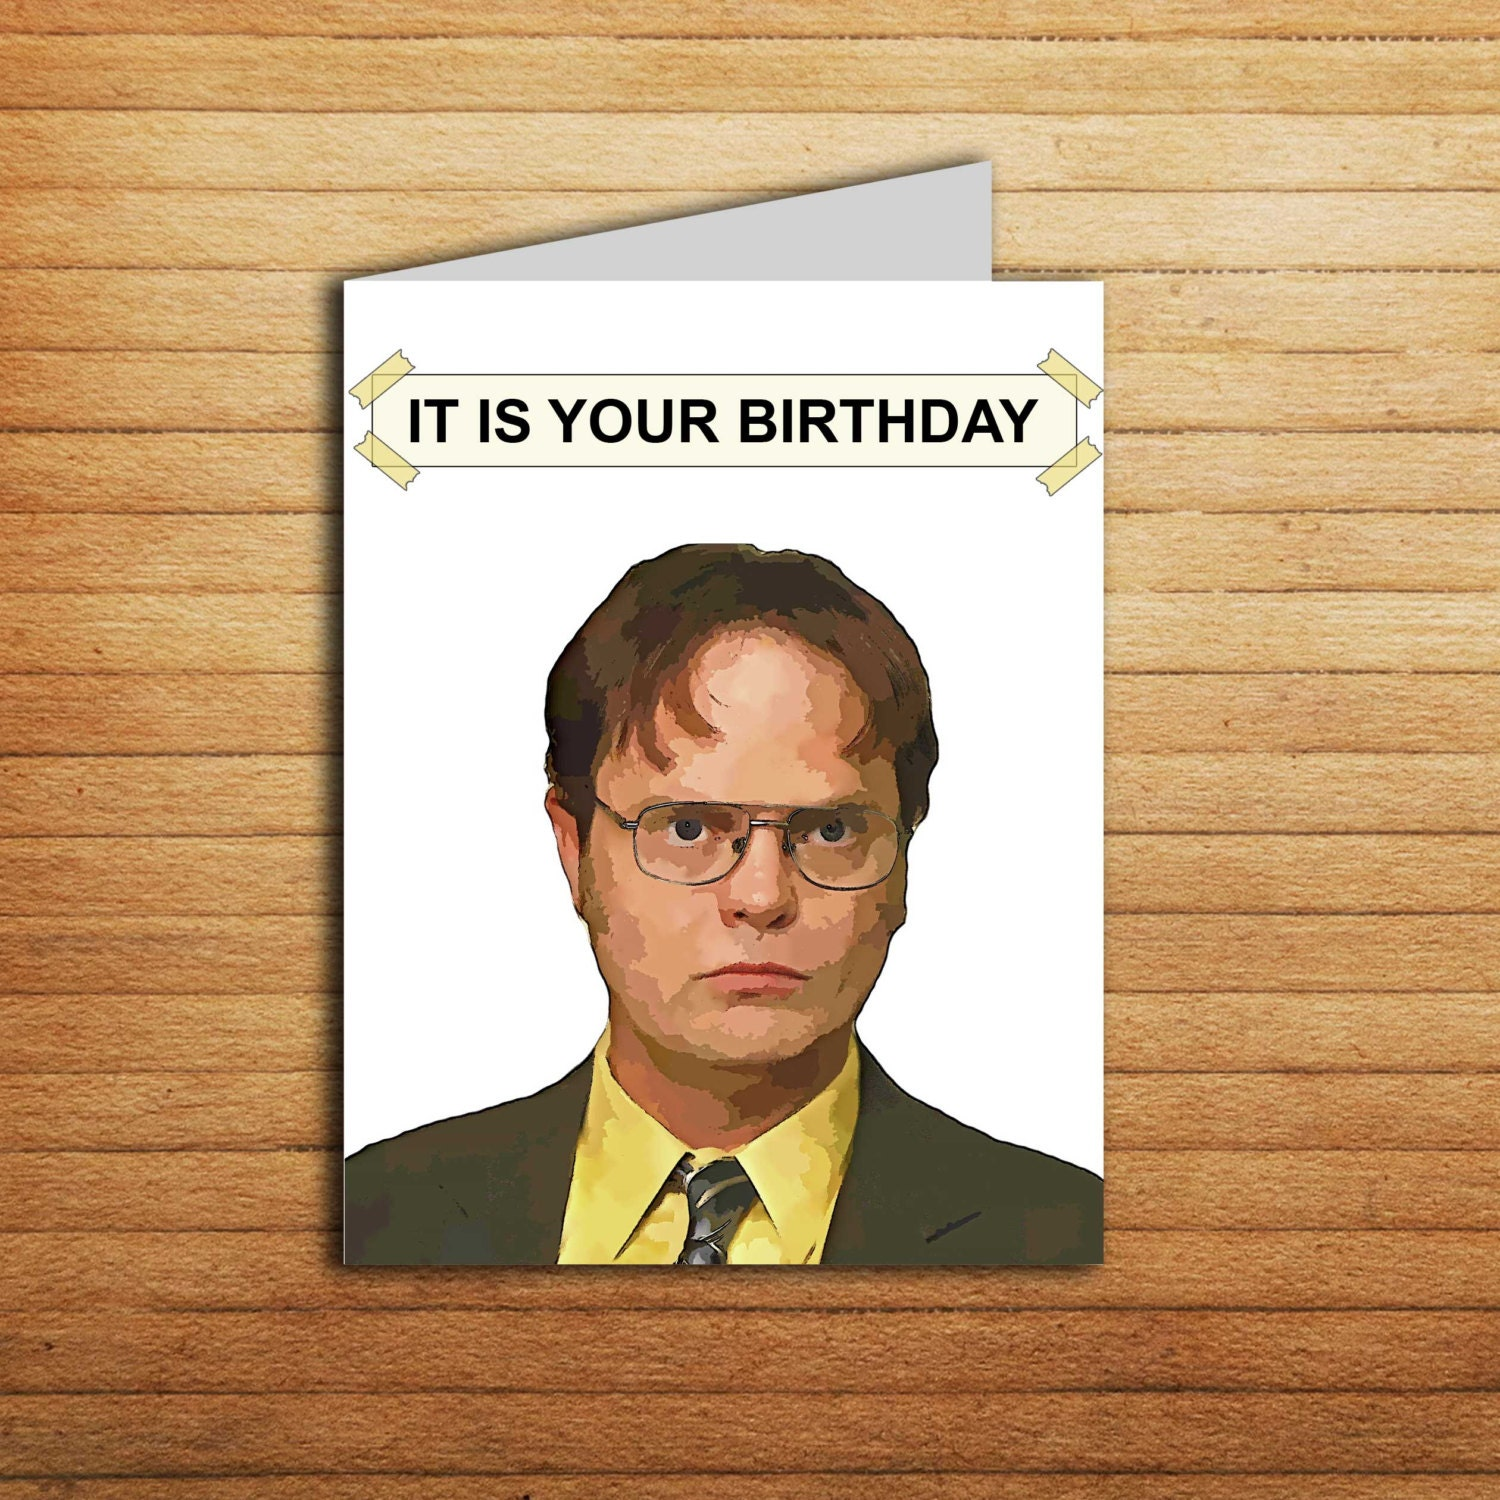 The office birthday card office tv show cards printable it is the office birthday card office tv show cards printable it is your birthday gift for coworker funny dwight schrute michael scott jim halpert bookmarktalkfo